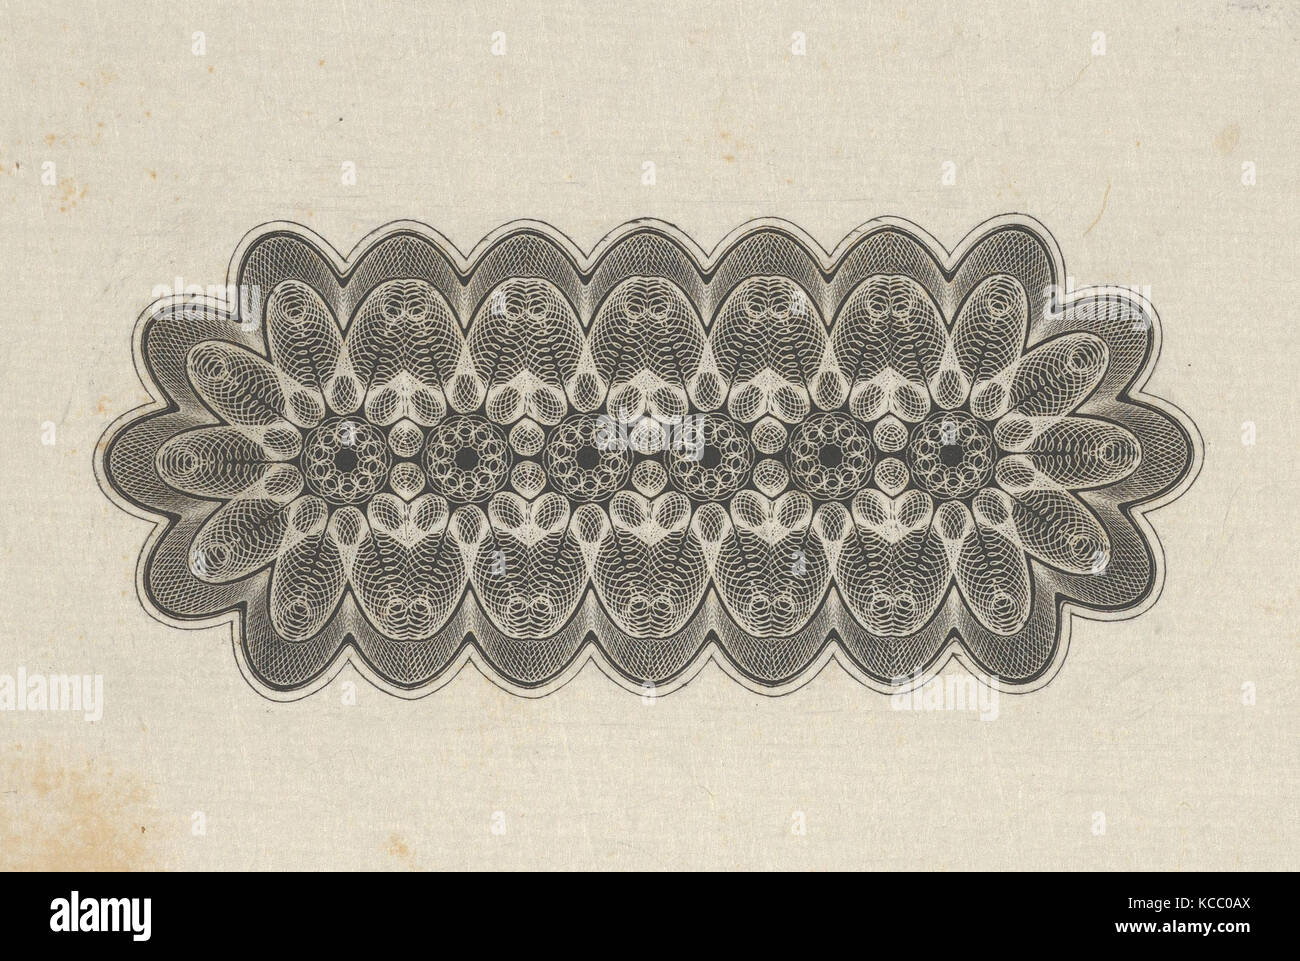 Banknote motifs: panel of lathe work ornament with rounded ends, with a repeating floral pattern, Associated with - Stock Image